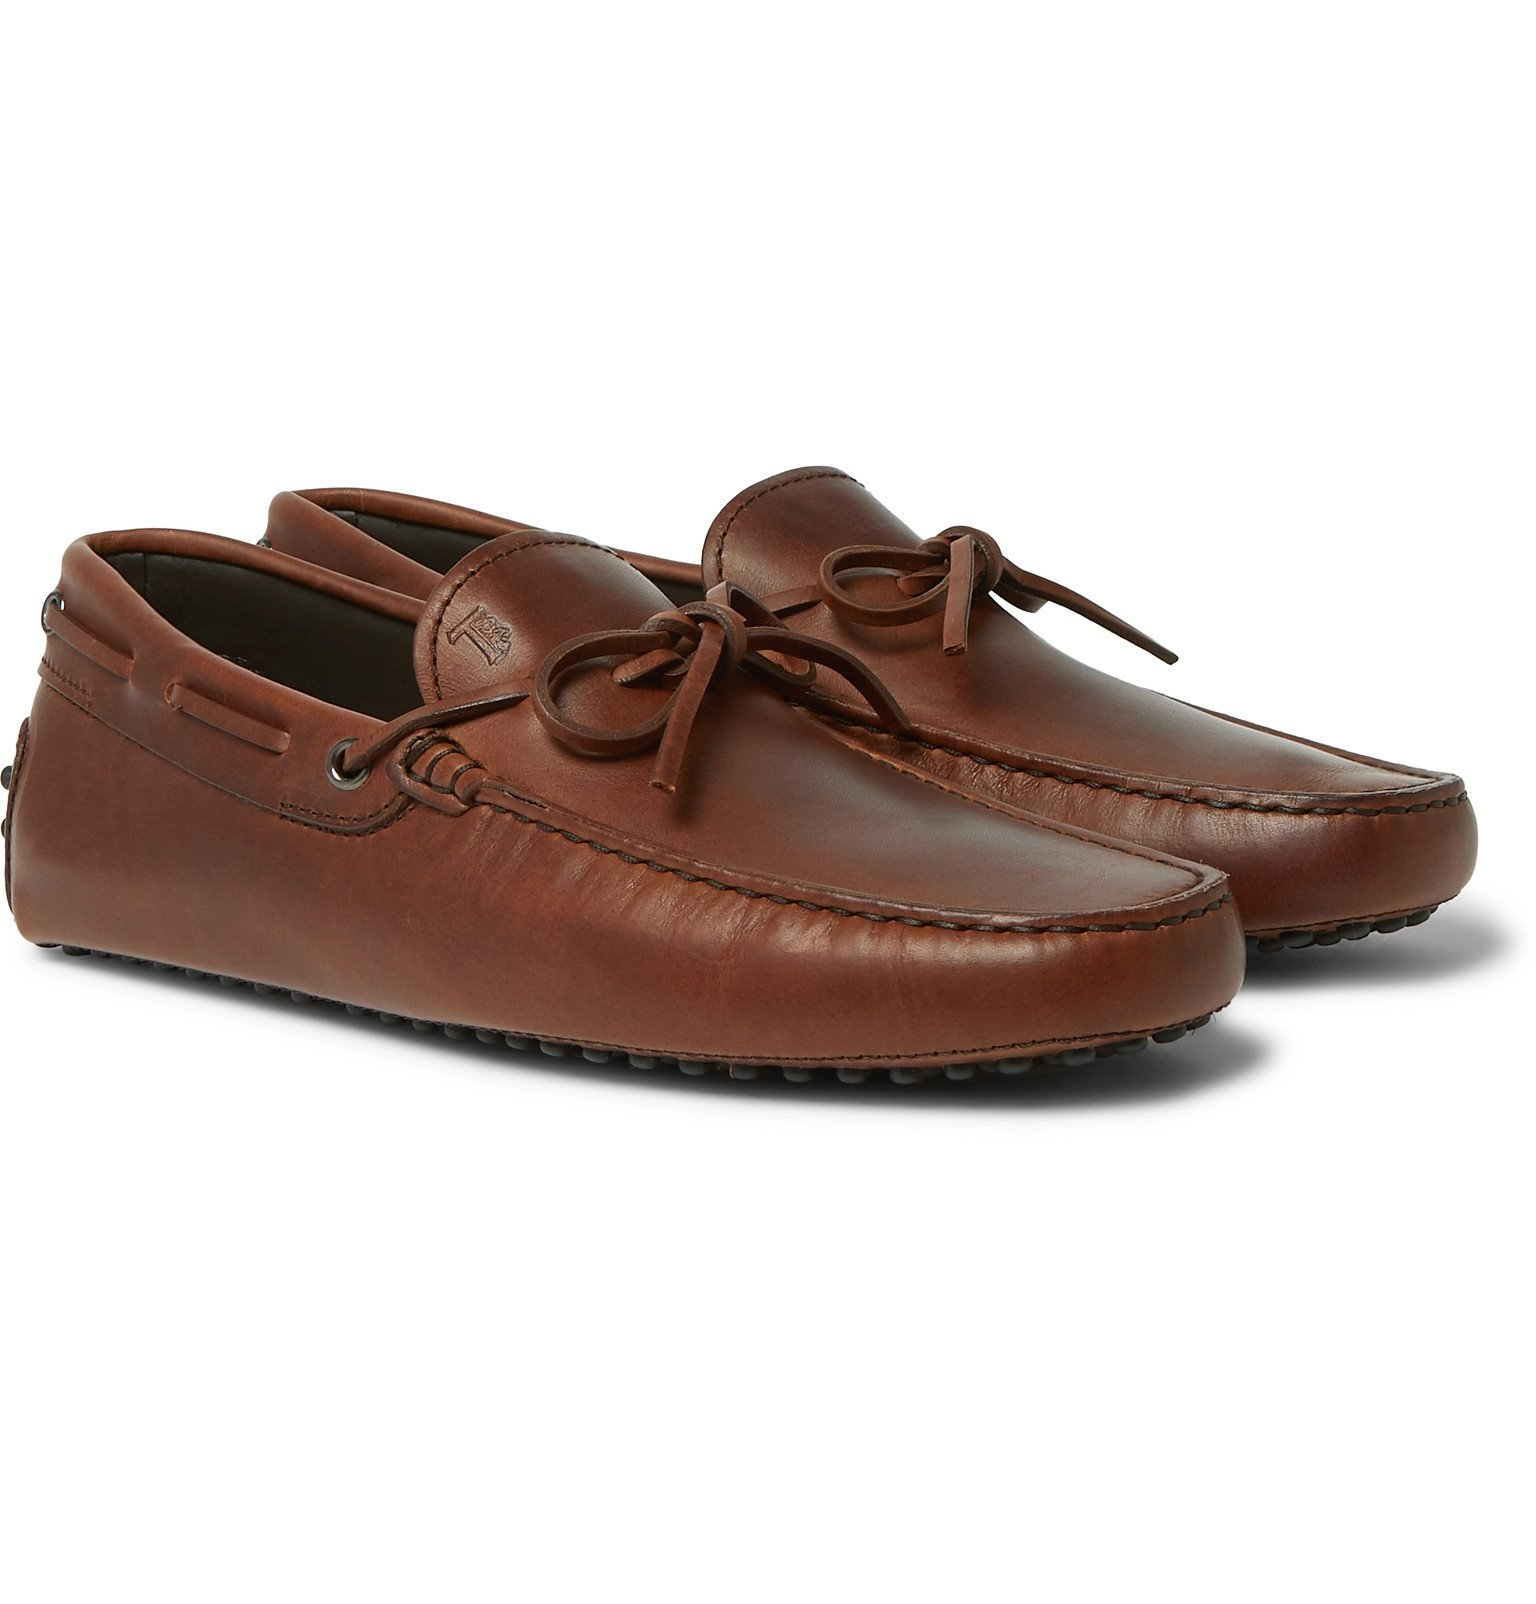 Tod's - Leather Driving Shoes - Brown